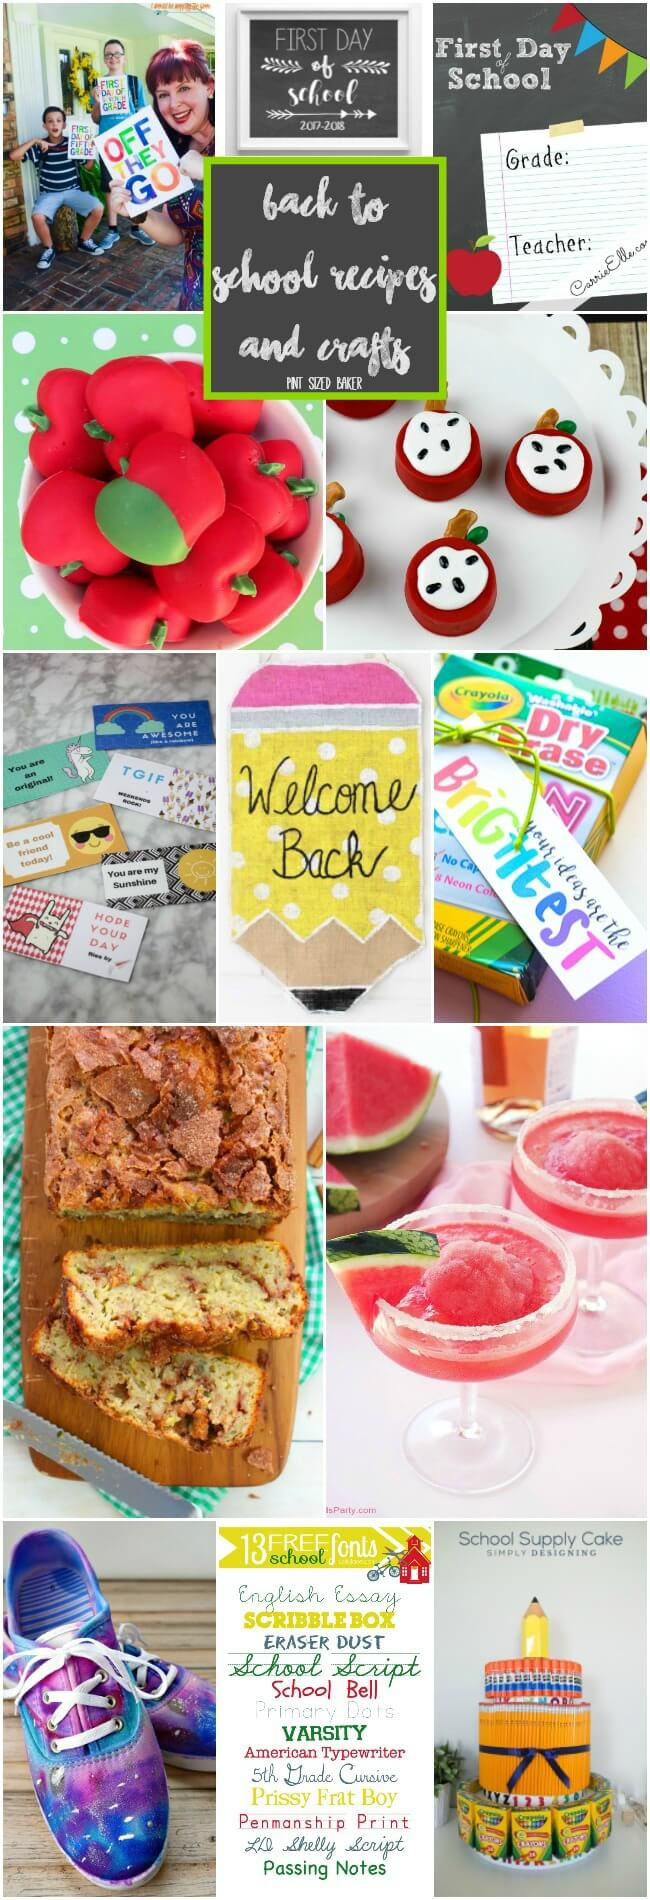 Start planing your back to school recipes and crafts. Here's a few printables, fun treats, easy DIY's and of course a cocktail for mama at the end of the hectic day.